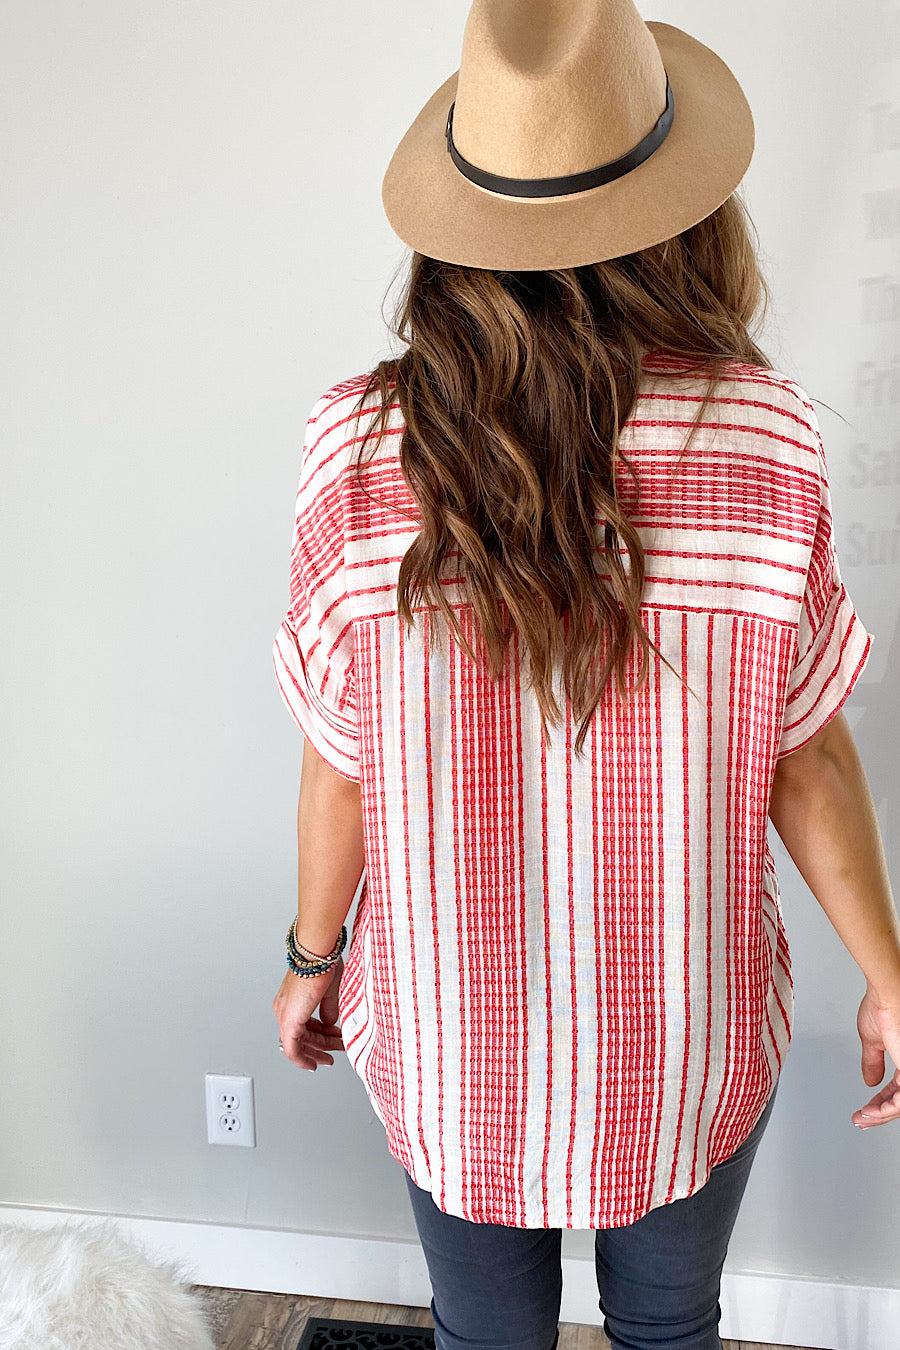 Jordan Textured Button Down Top